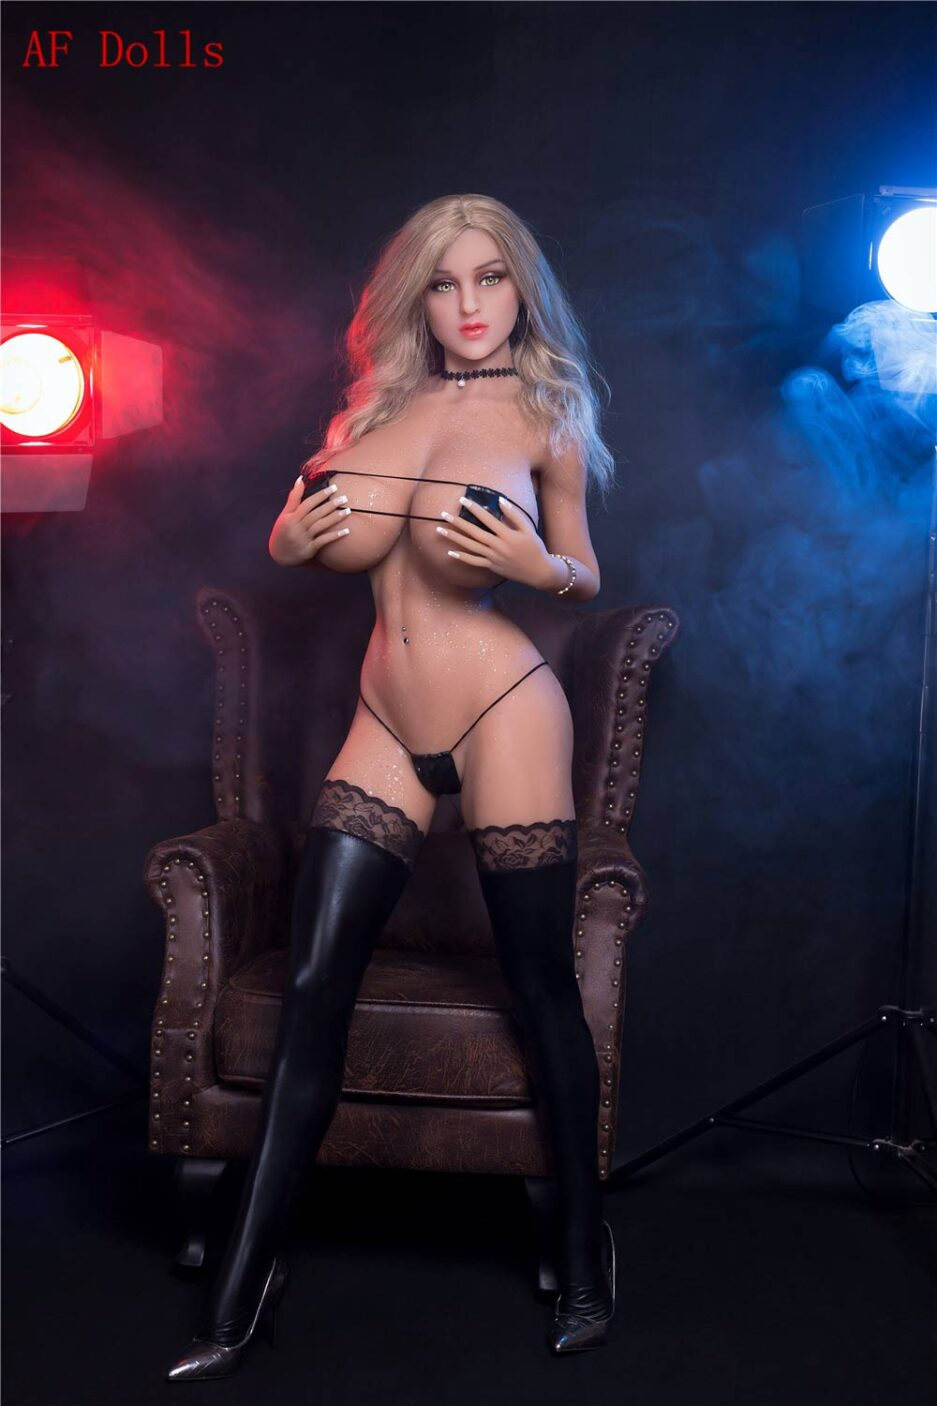 Big breasted sex doll with hands touching chest